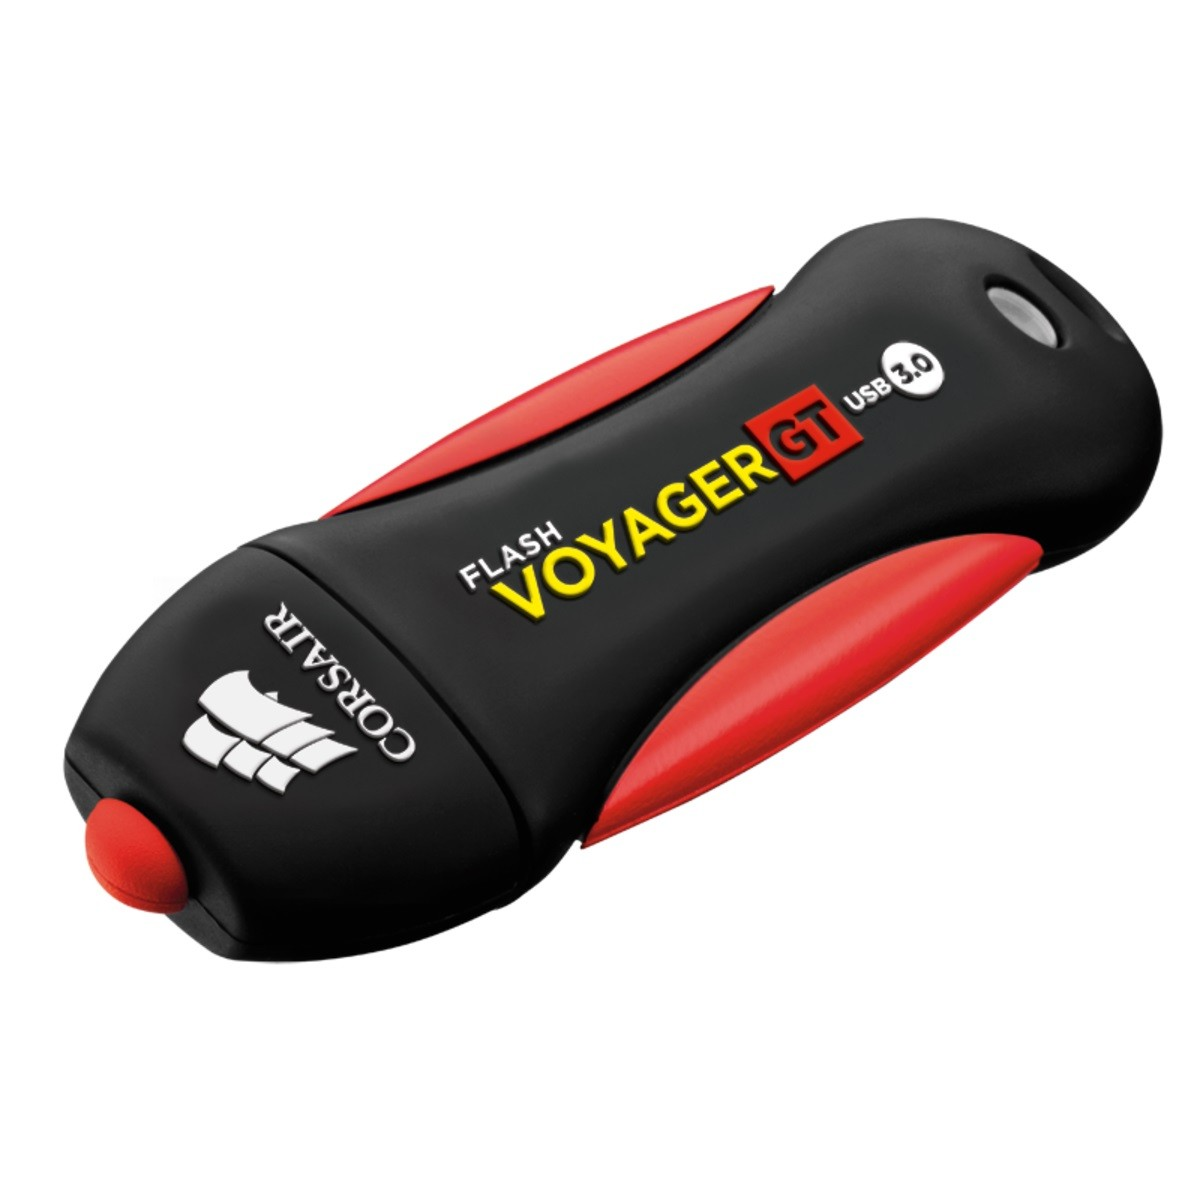 pendrive-flash-voyager-gt-128gb-usb3-0-390120-mbs